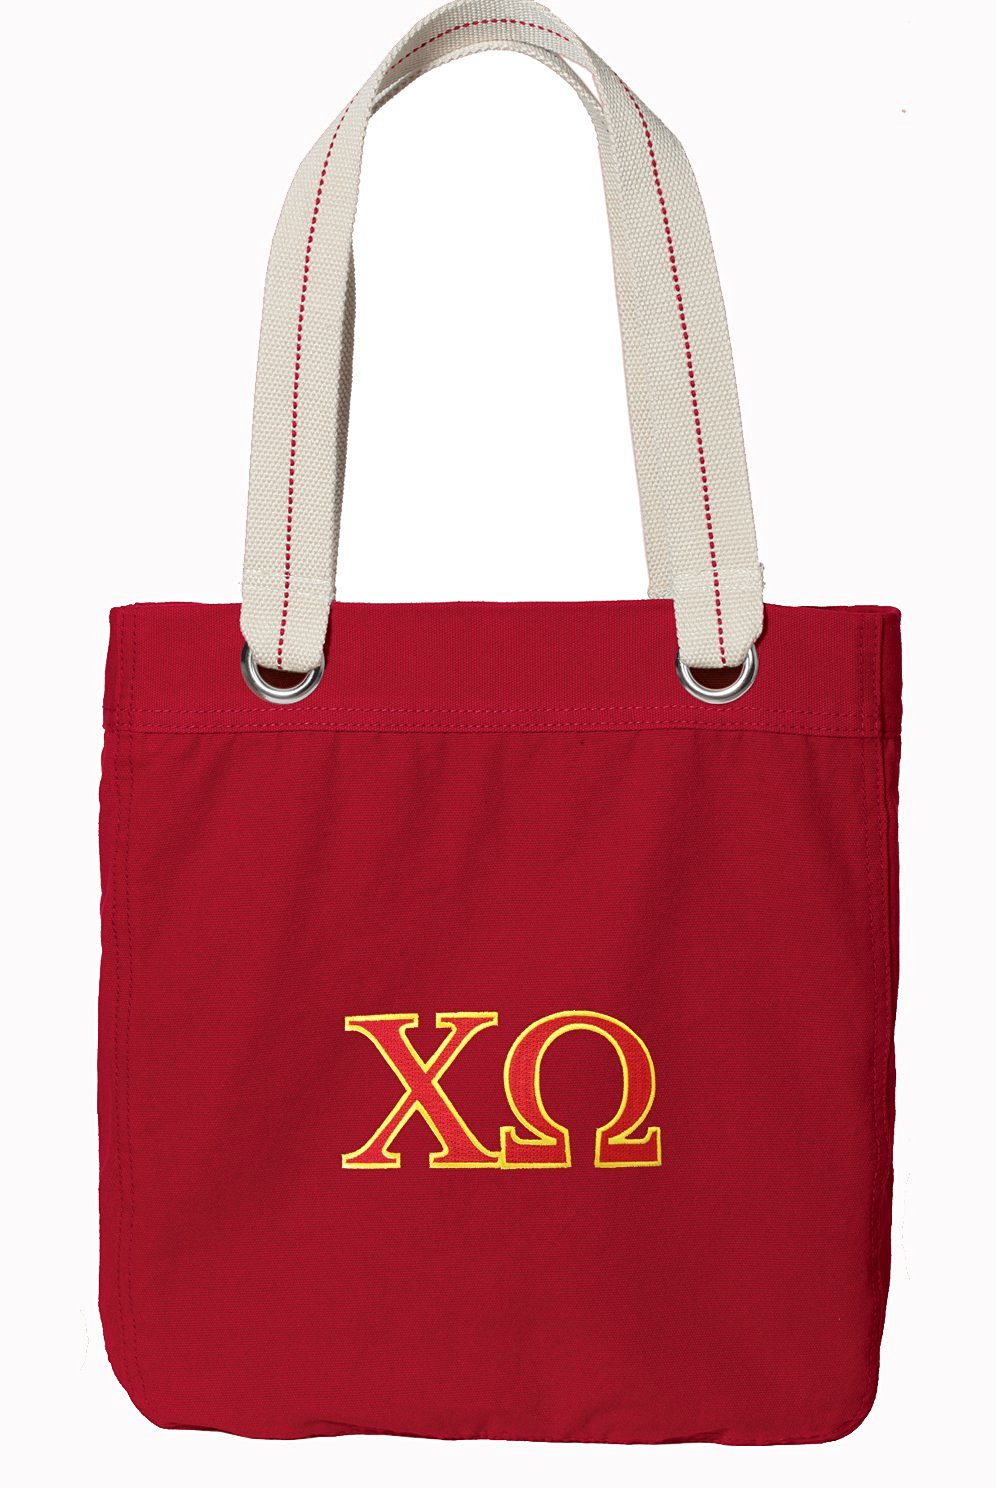 Chi Omega Tote Bag RICH Dye Washed RED COTTON CANVAS